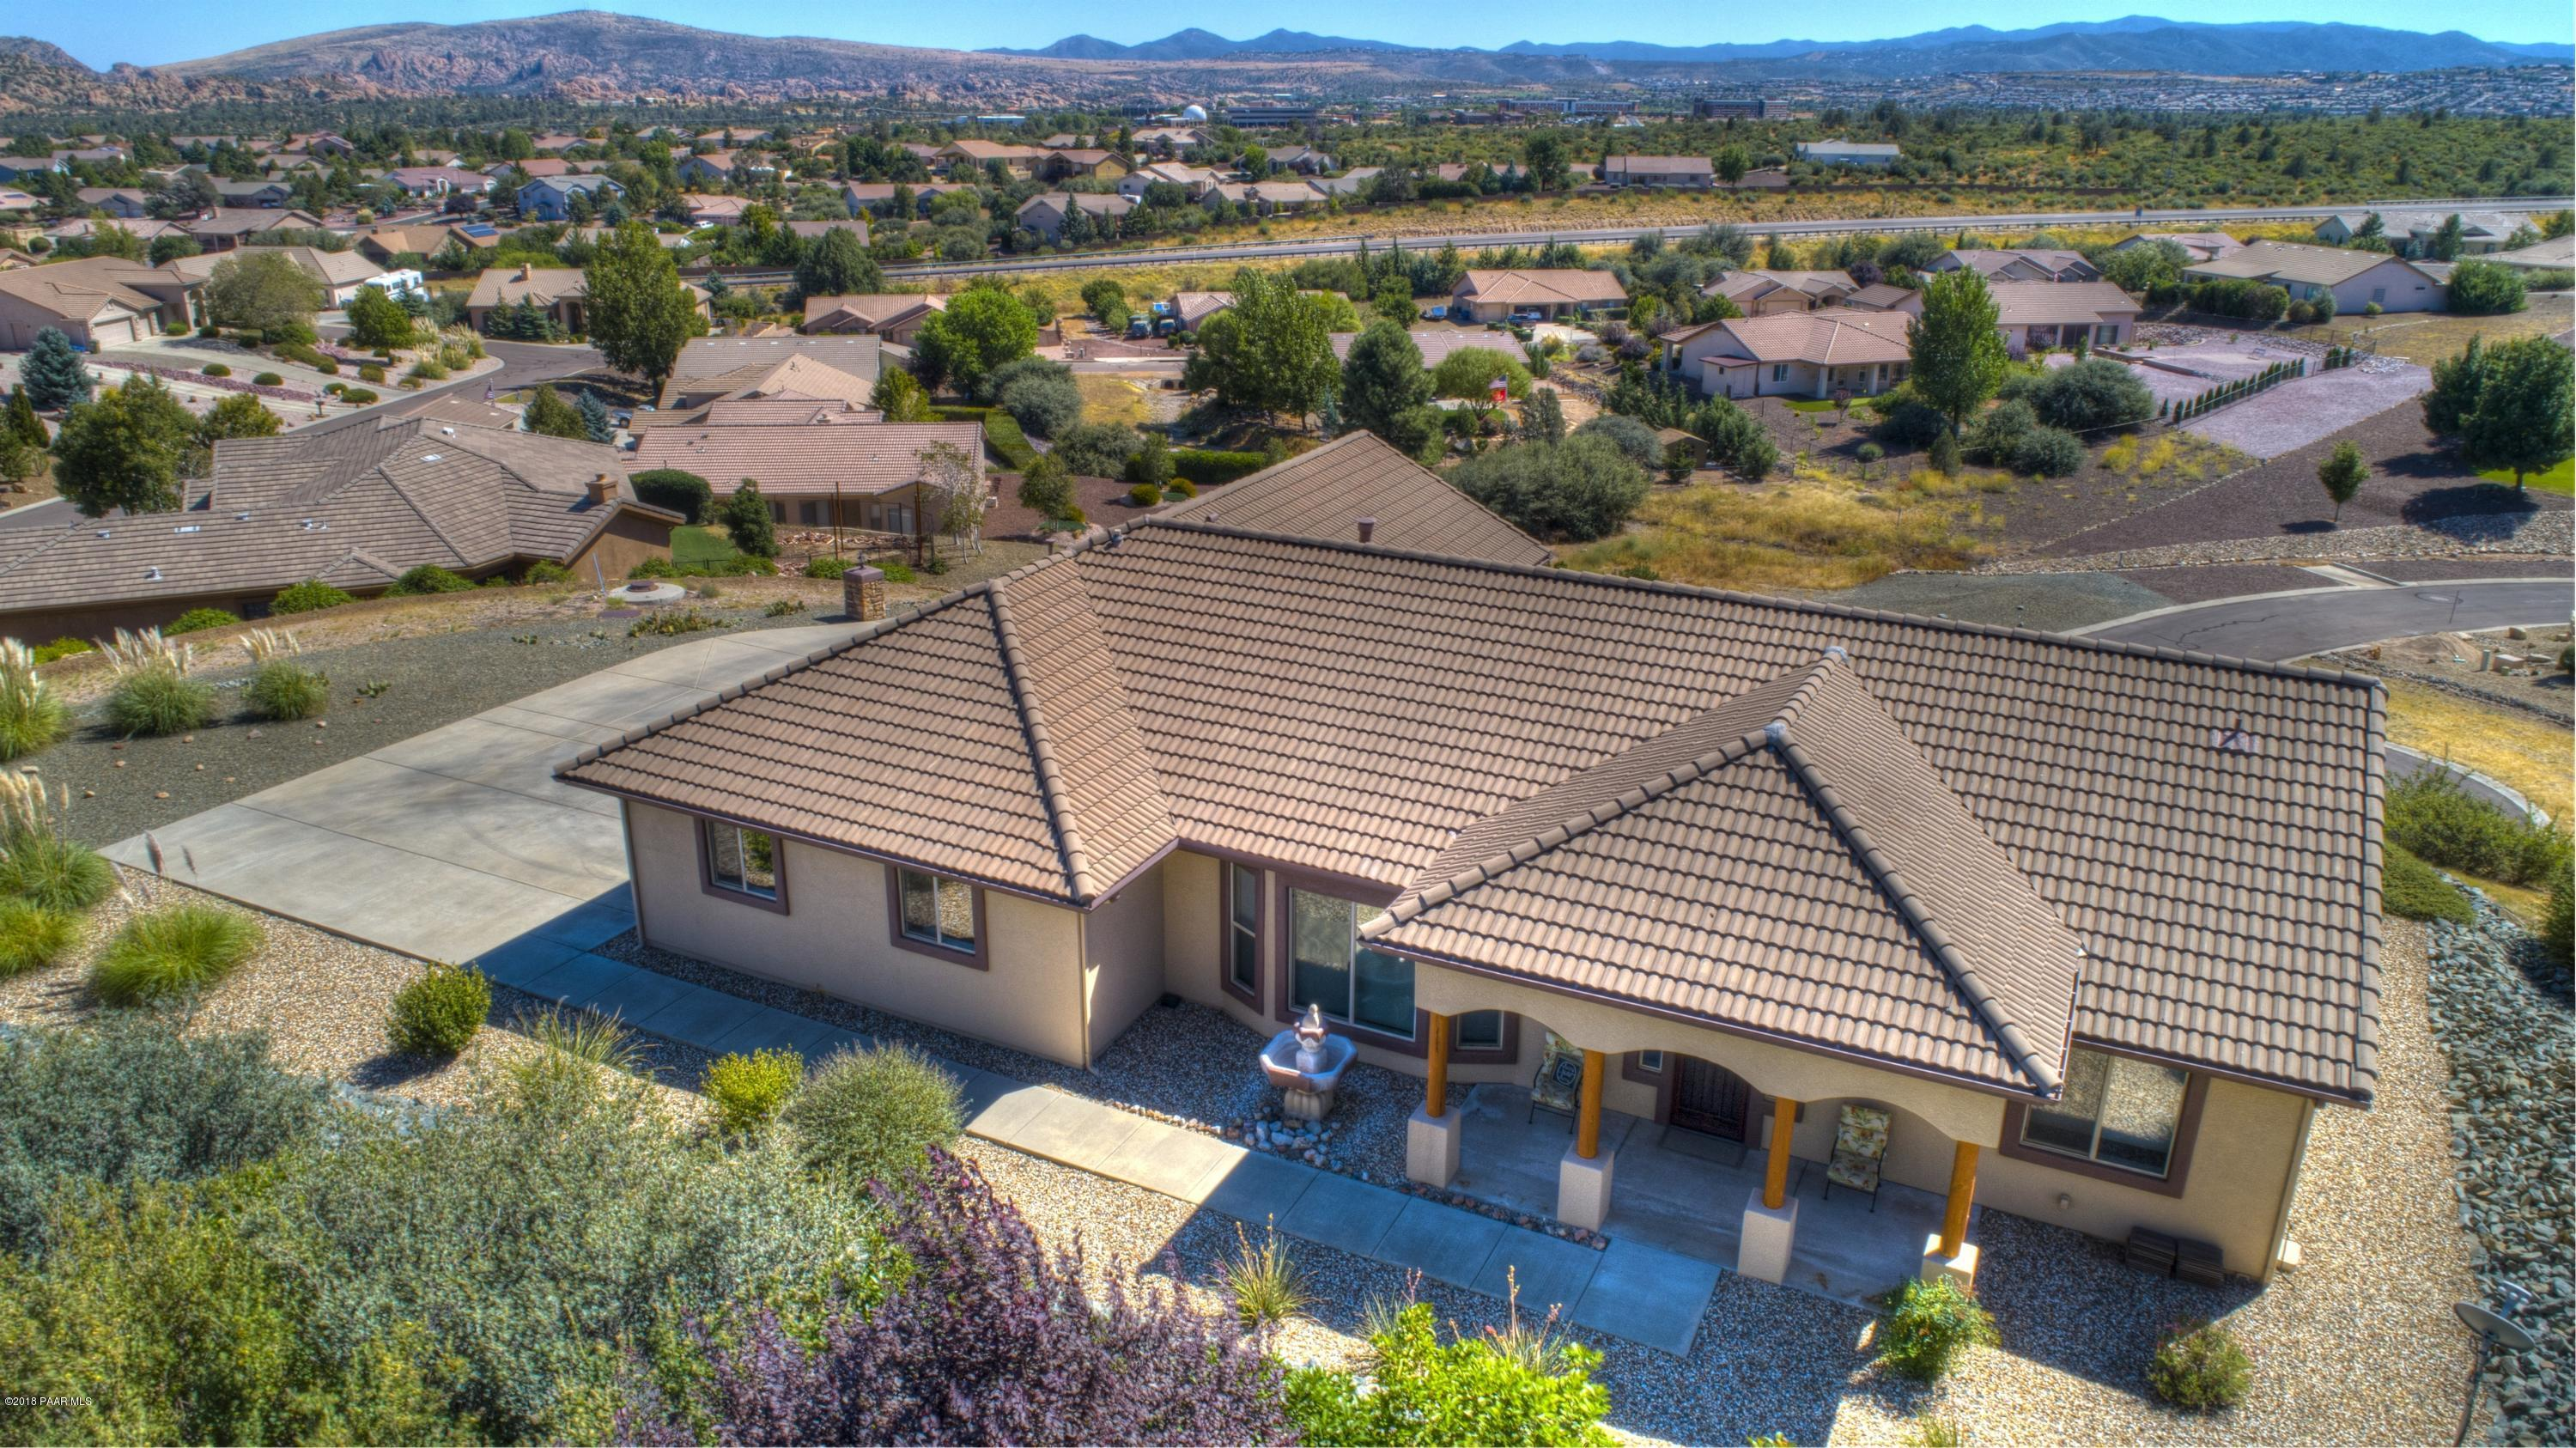 5709 Ginseng Way Prescott, AZ 86305 - MLS #: 1015872